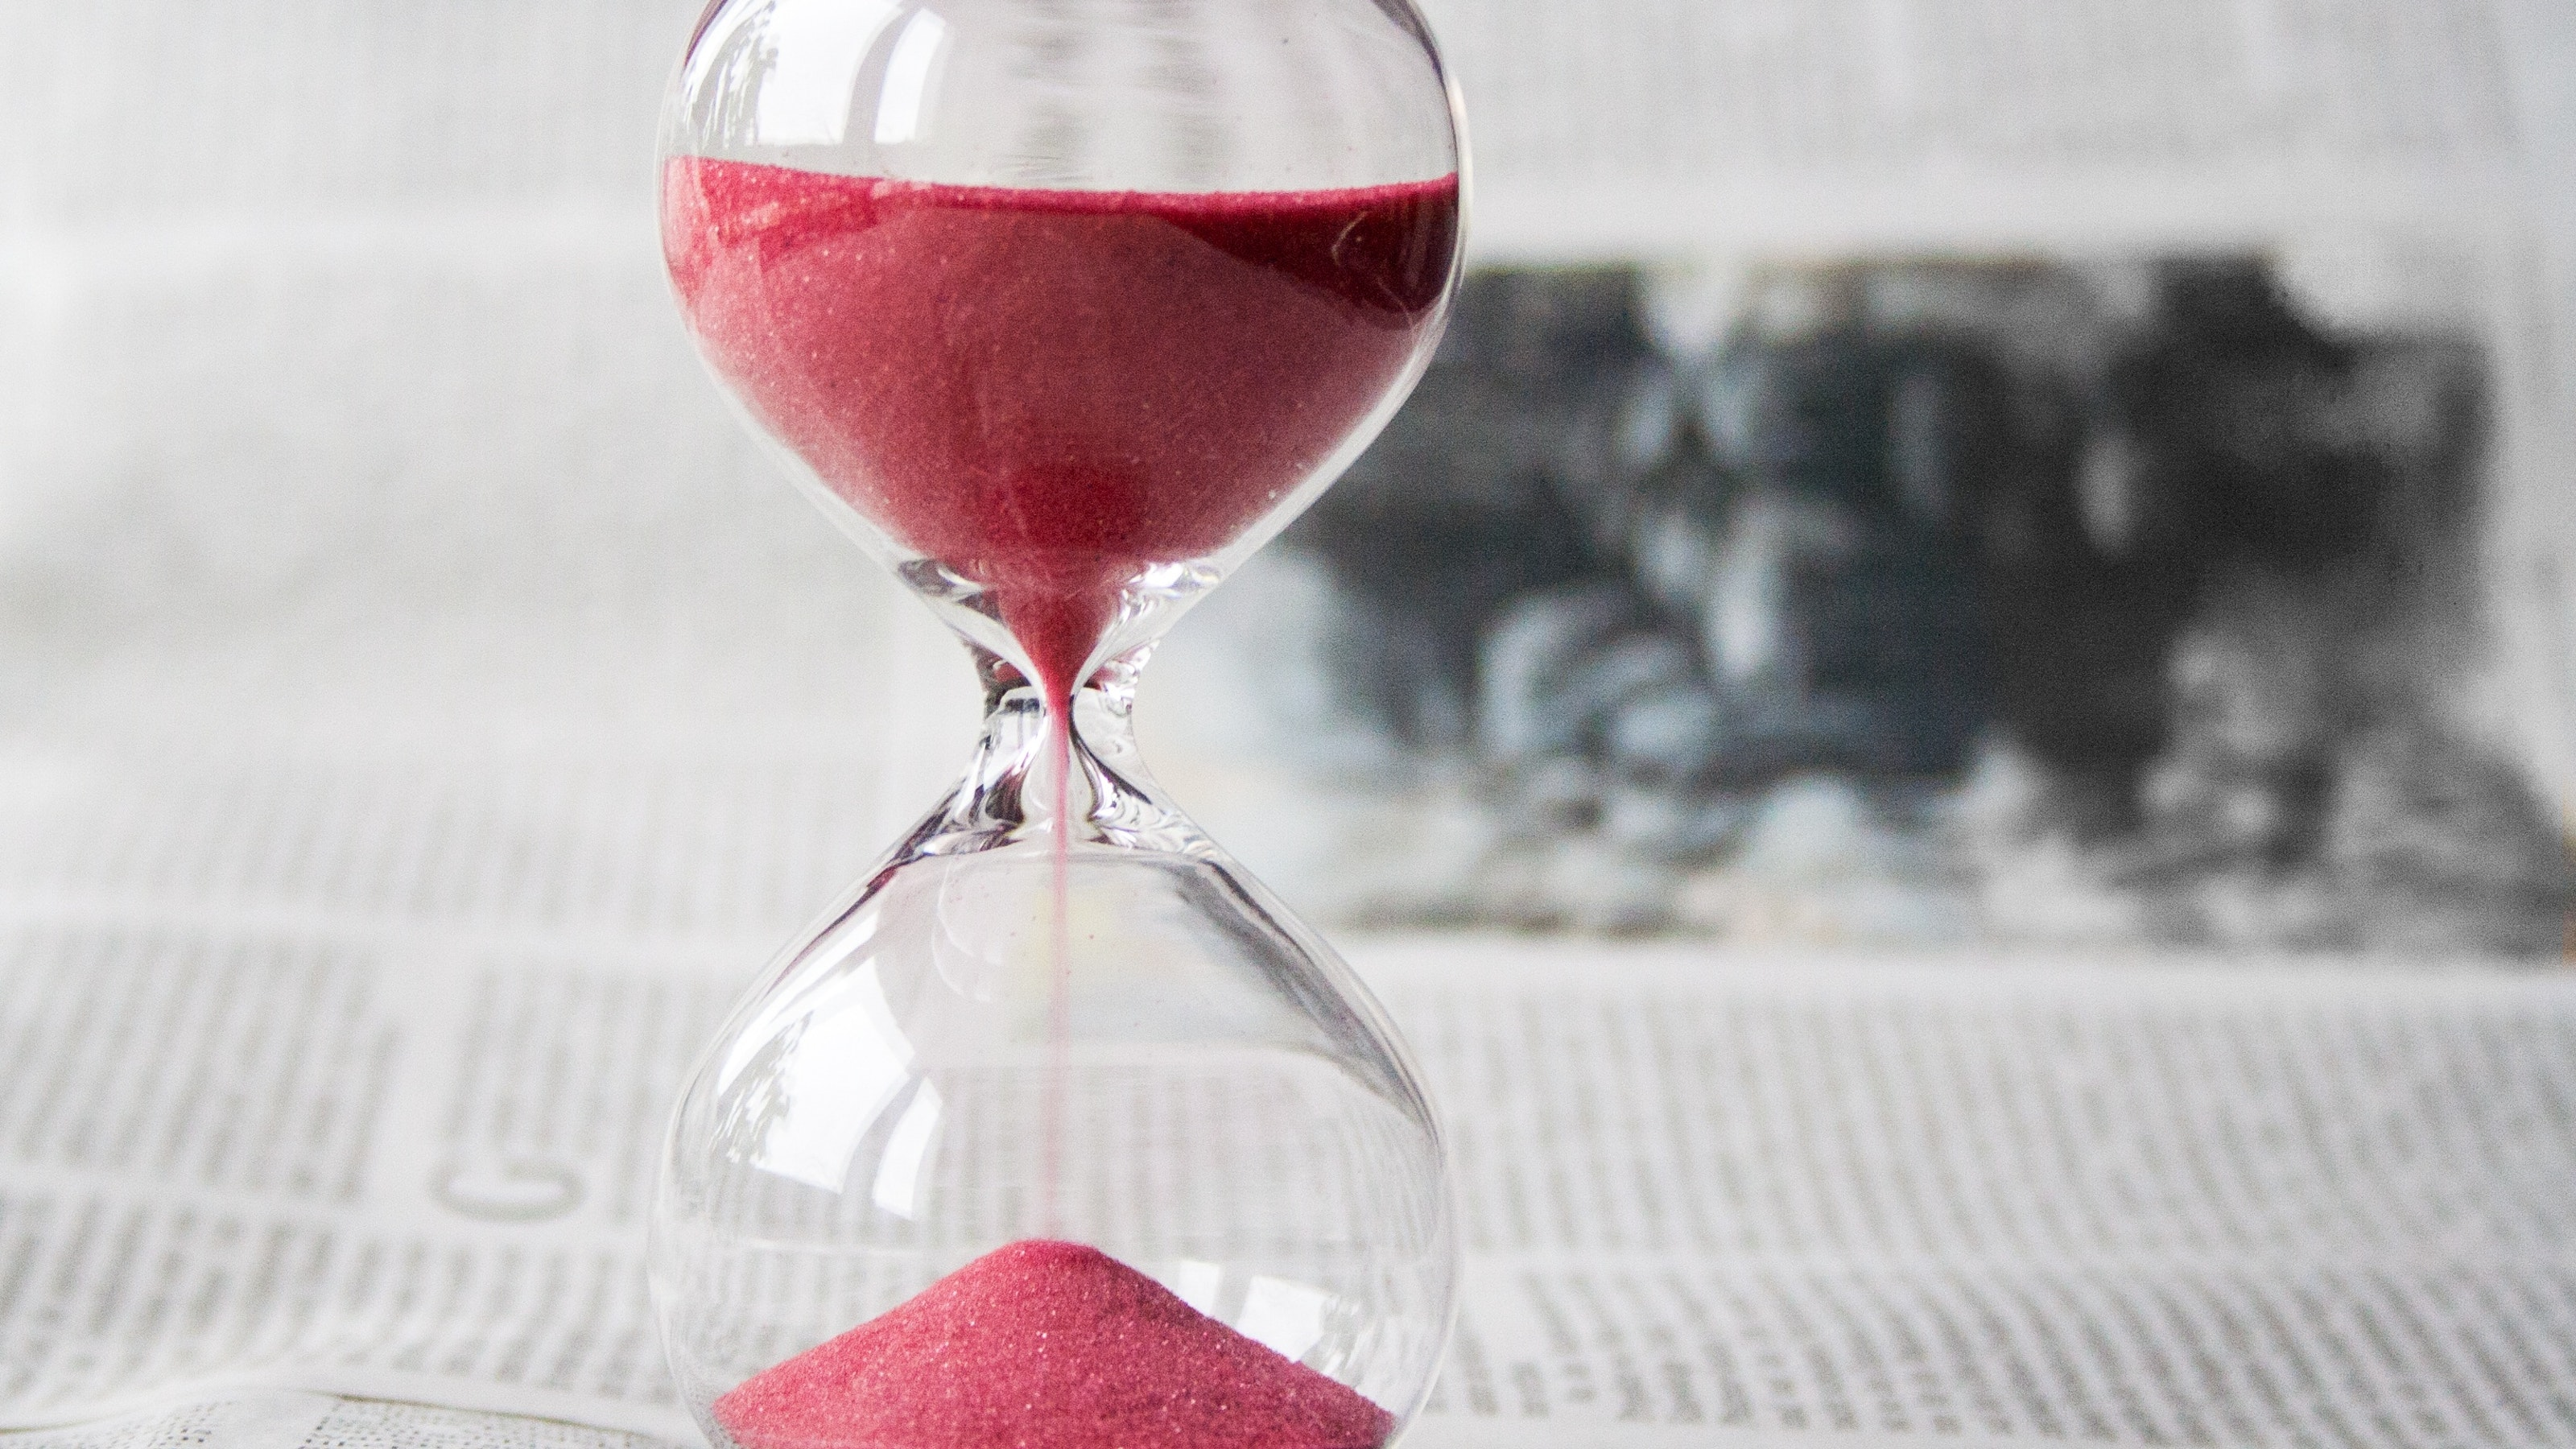 Close up of an hourglass with red sand inside it.